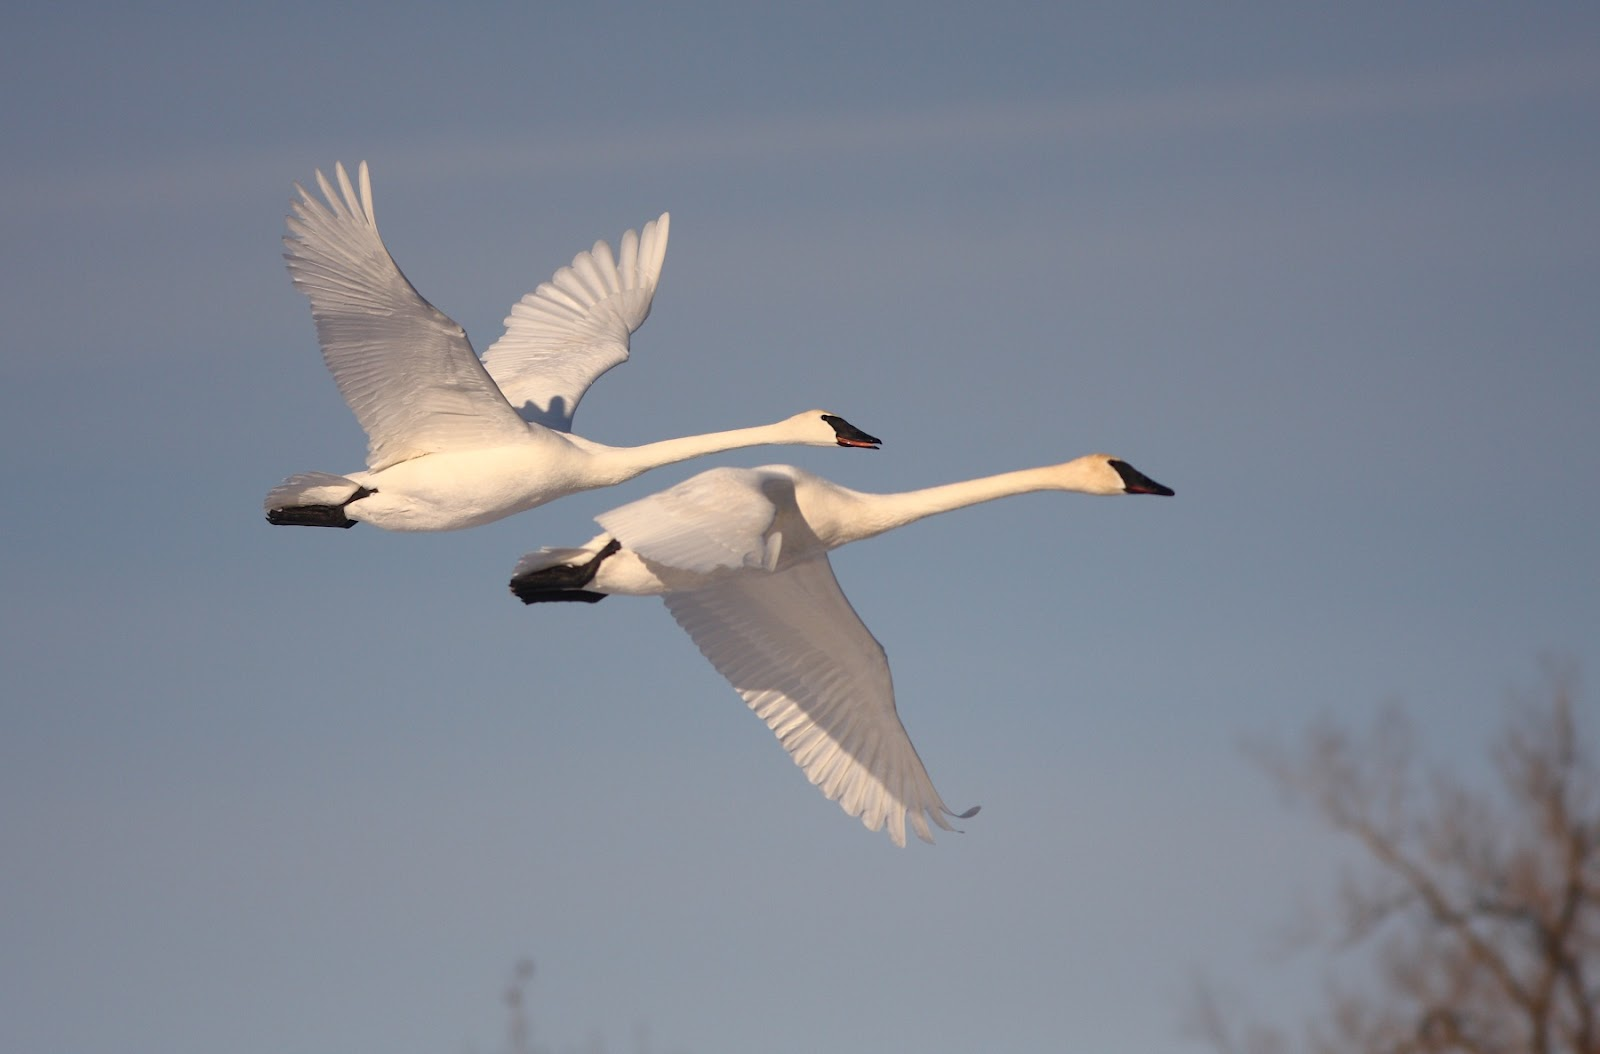 Two swans flying